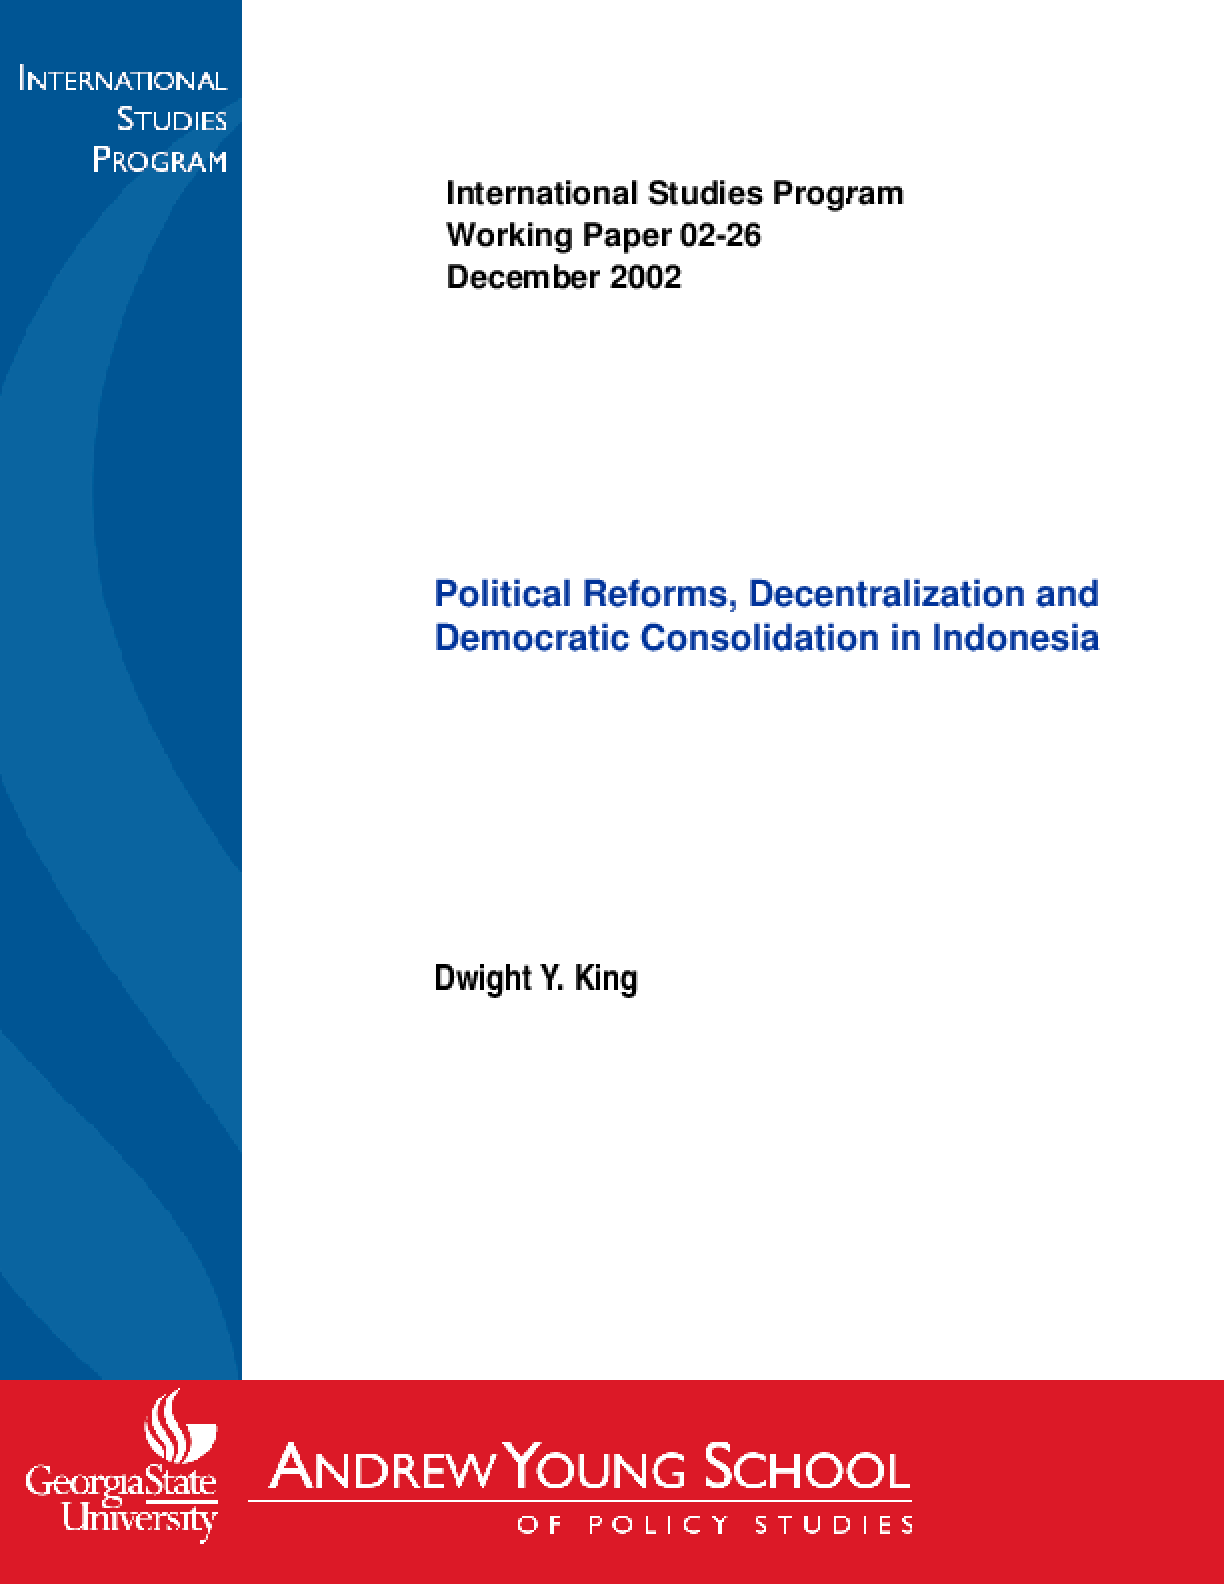 Political Reforms, Decentralization and Democratic Consolodation in Indonesia